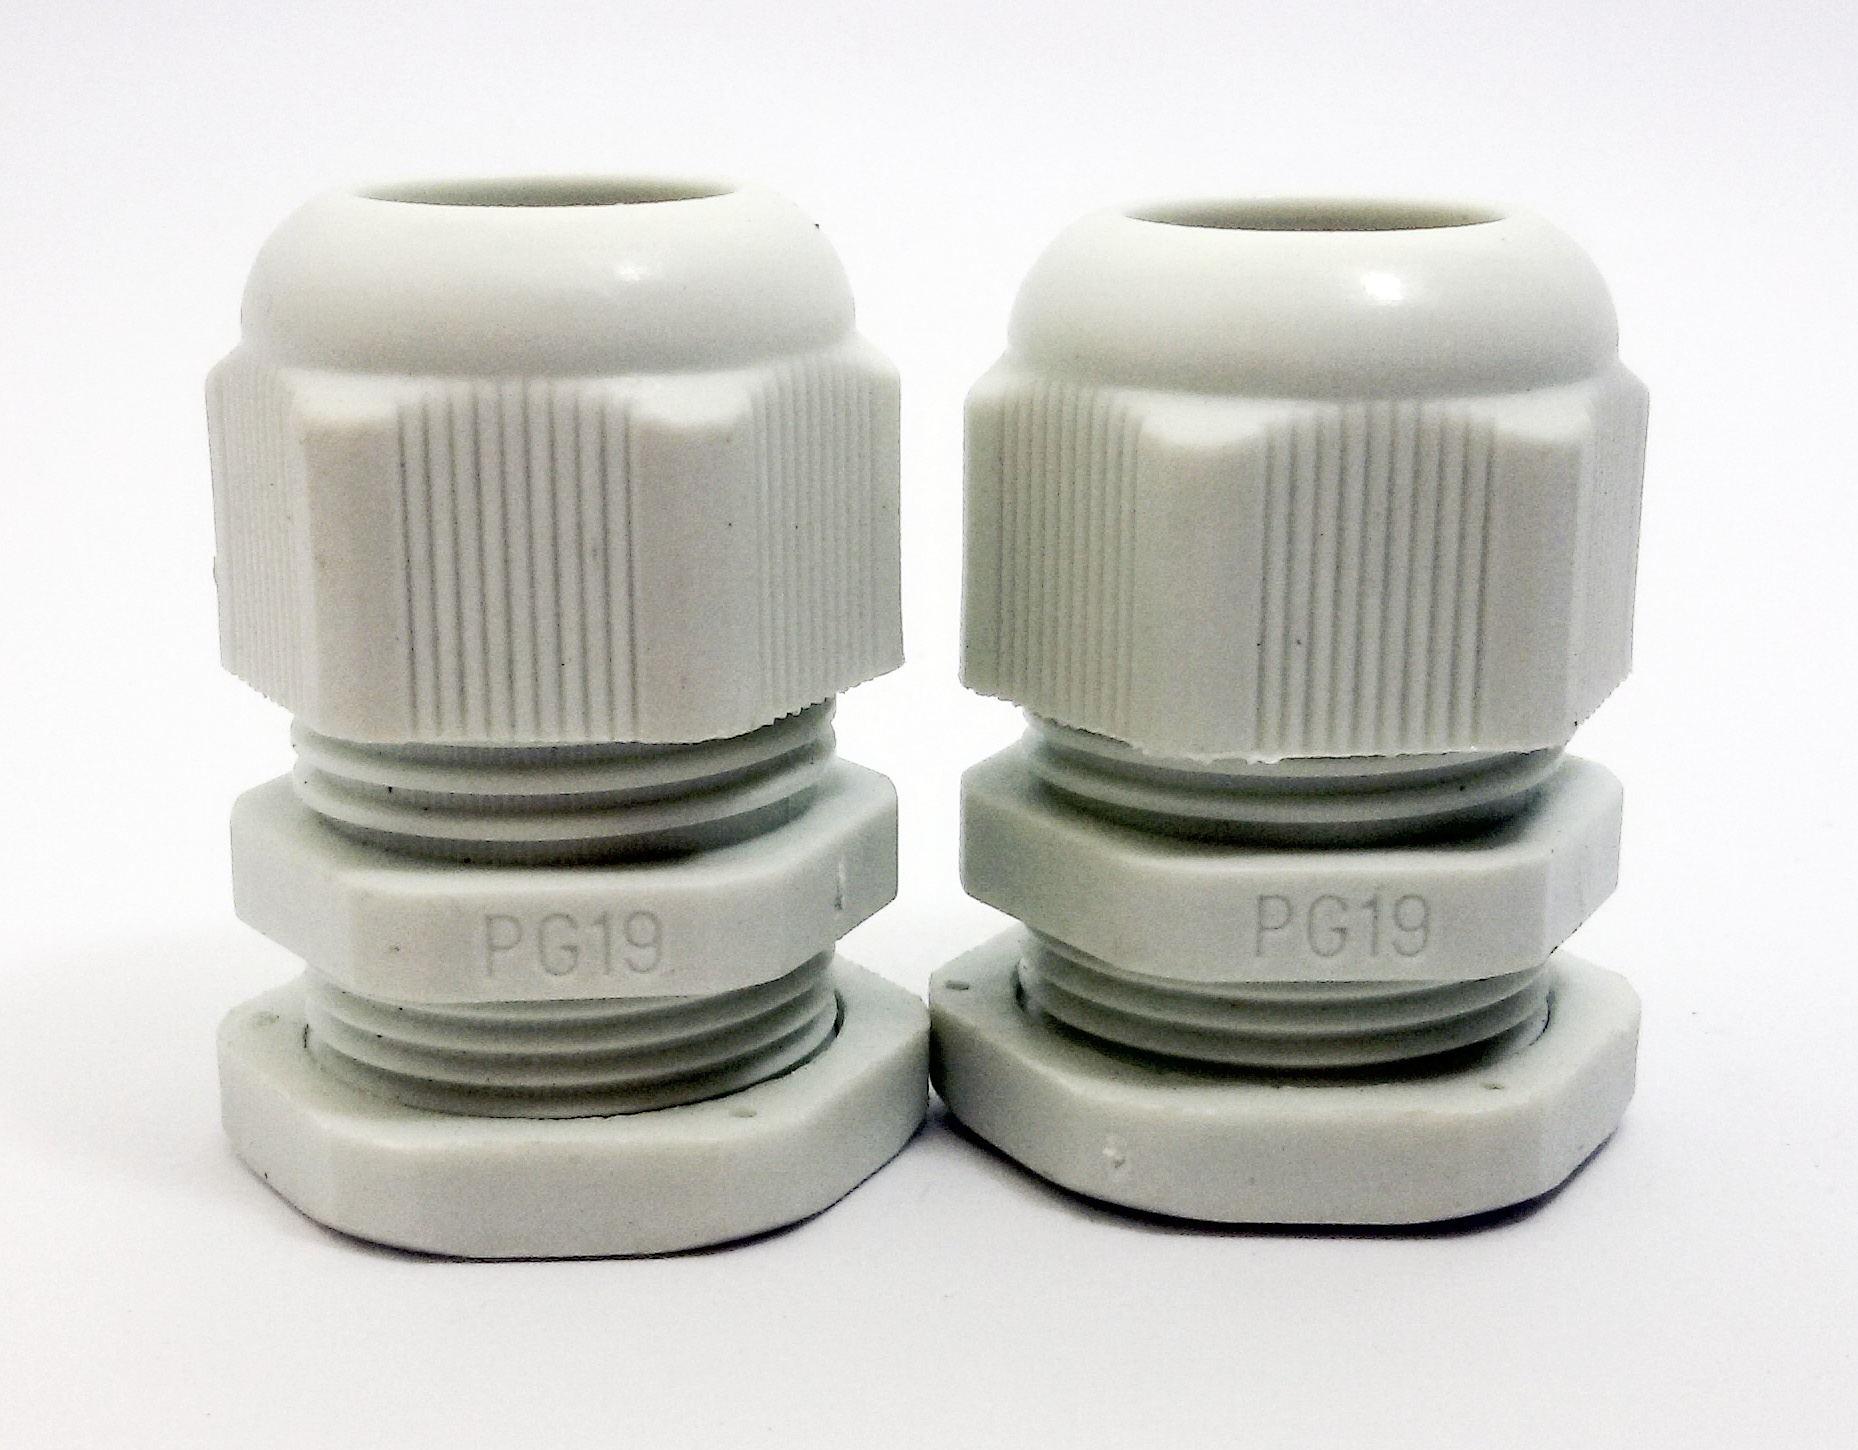 LOBO ELECTRIC CABLE GLAND PG19 12 -15 mm. สีขาว